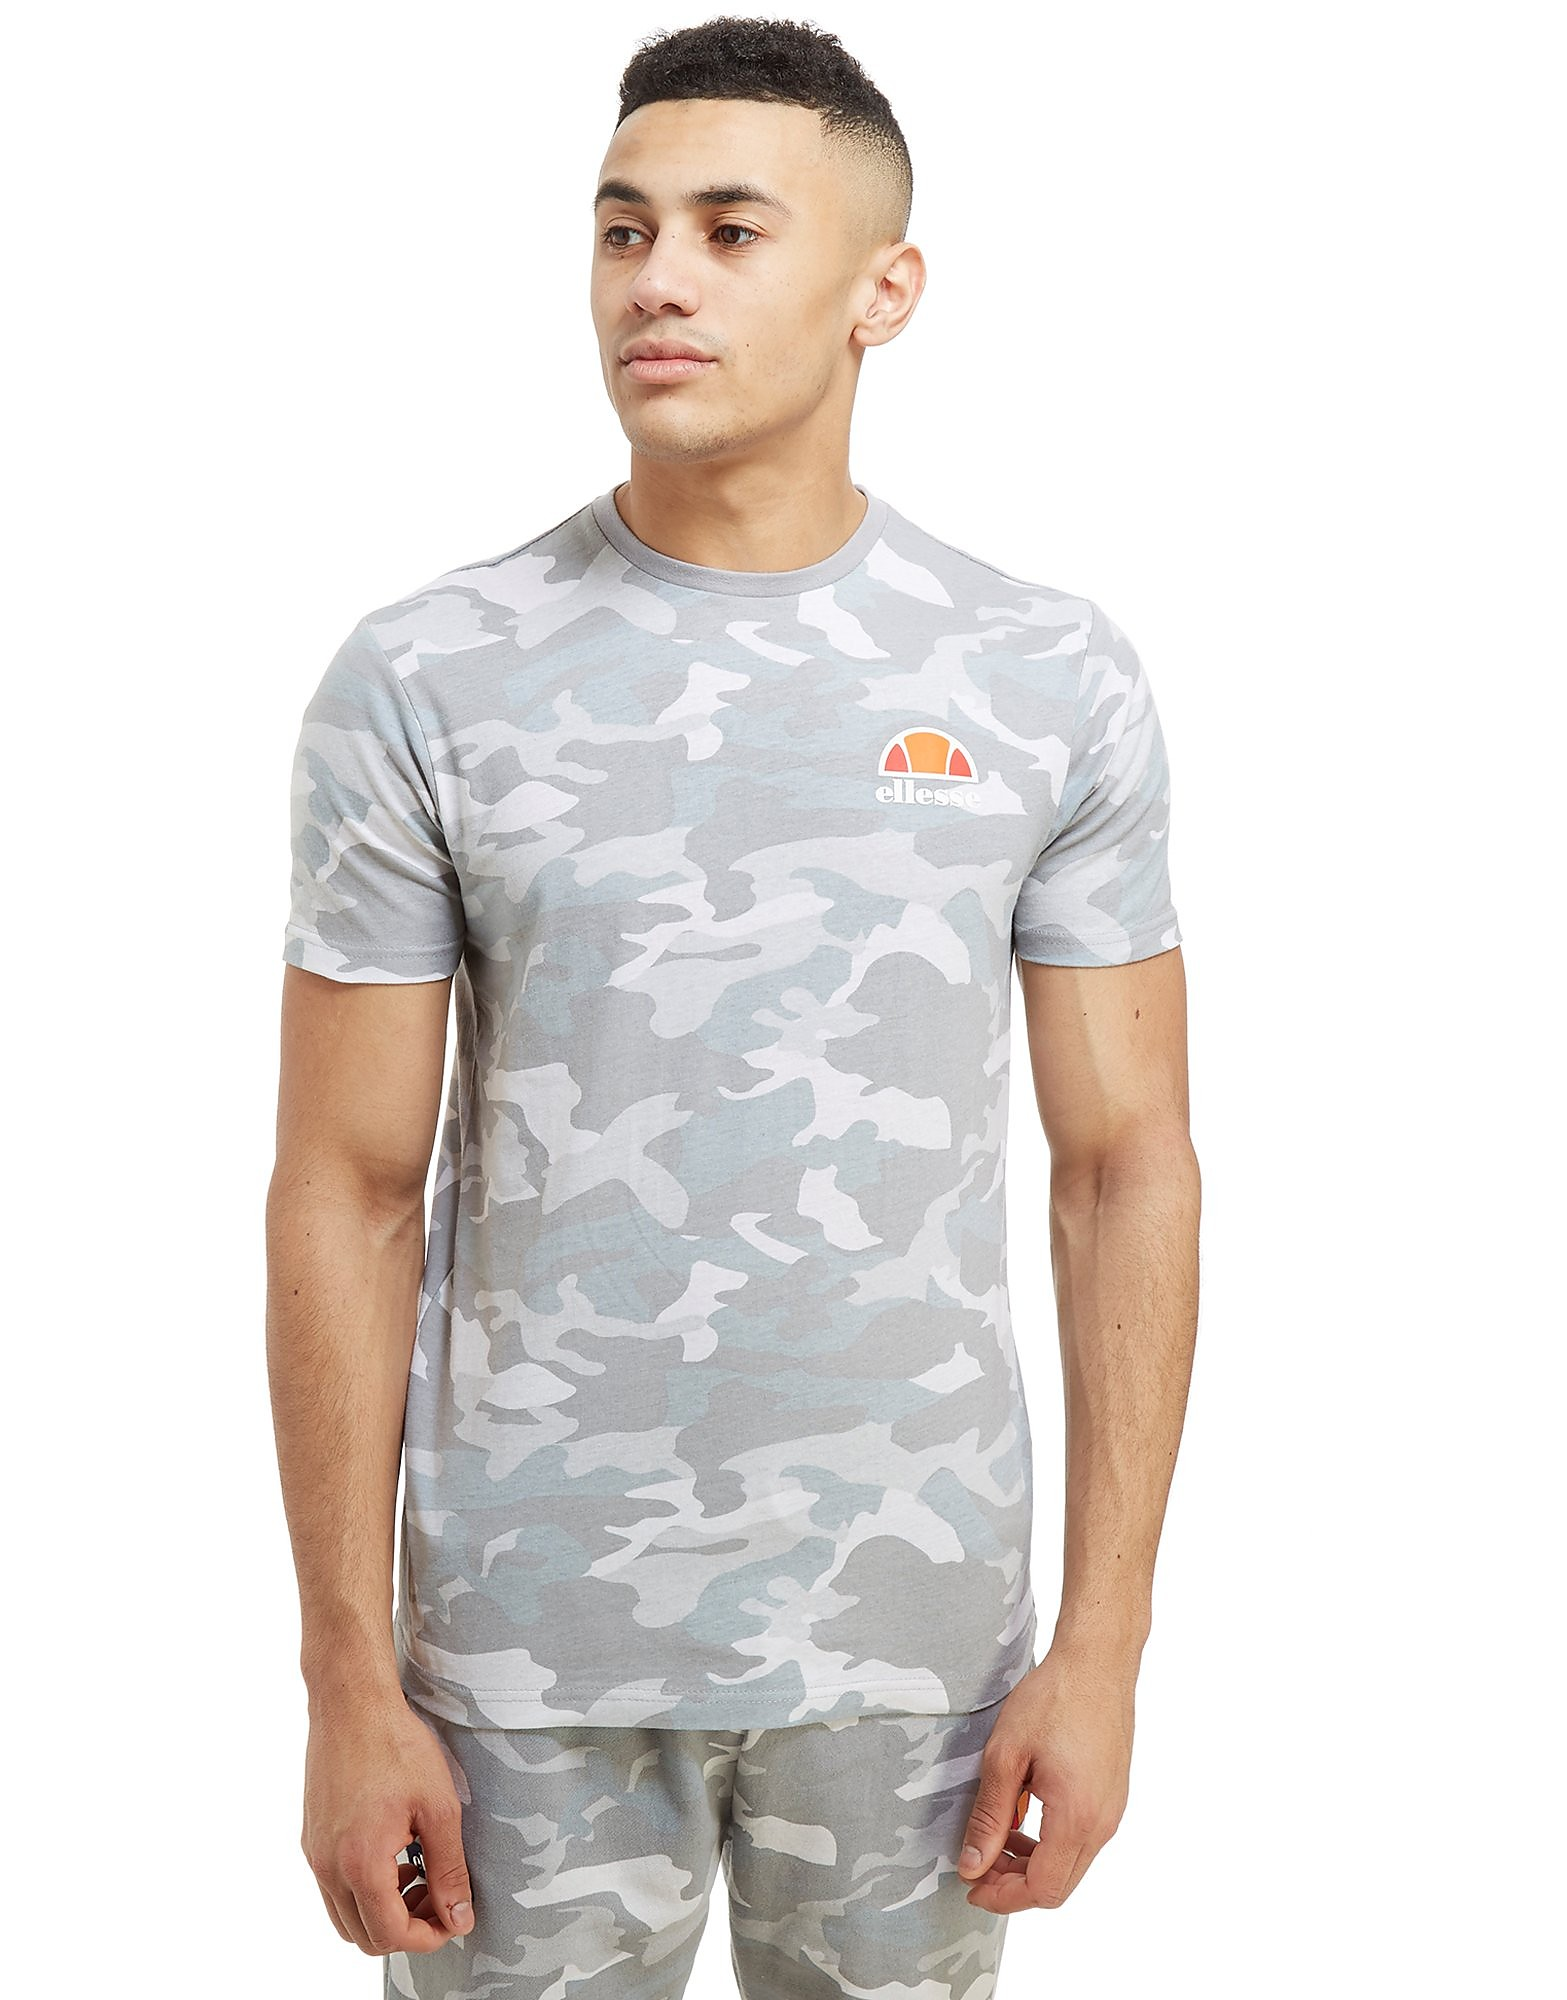 Ellesse T-shirt Canaletto Camo Homme